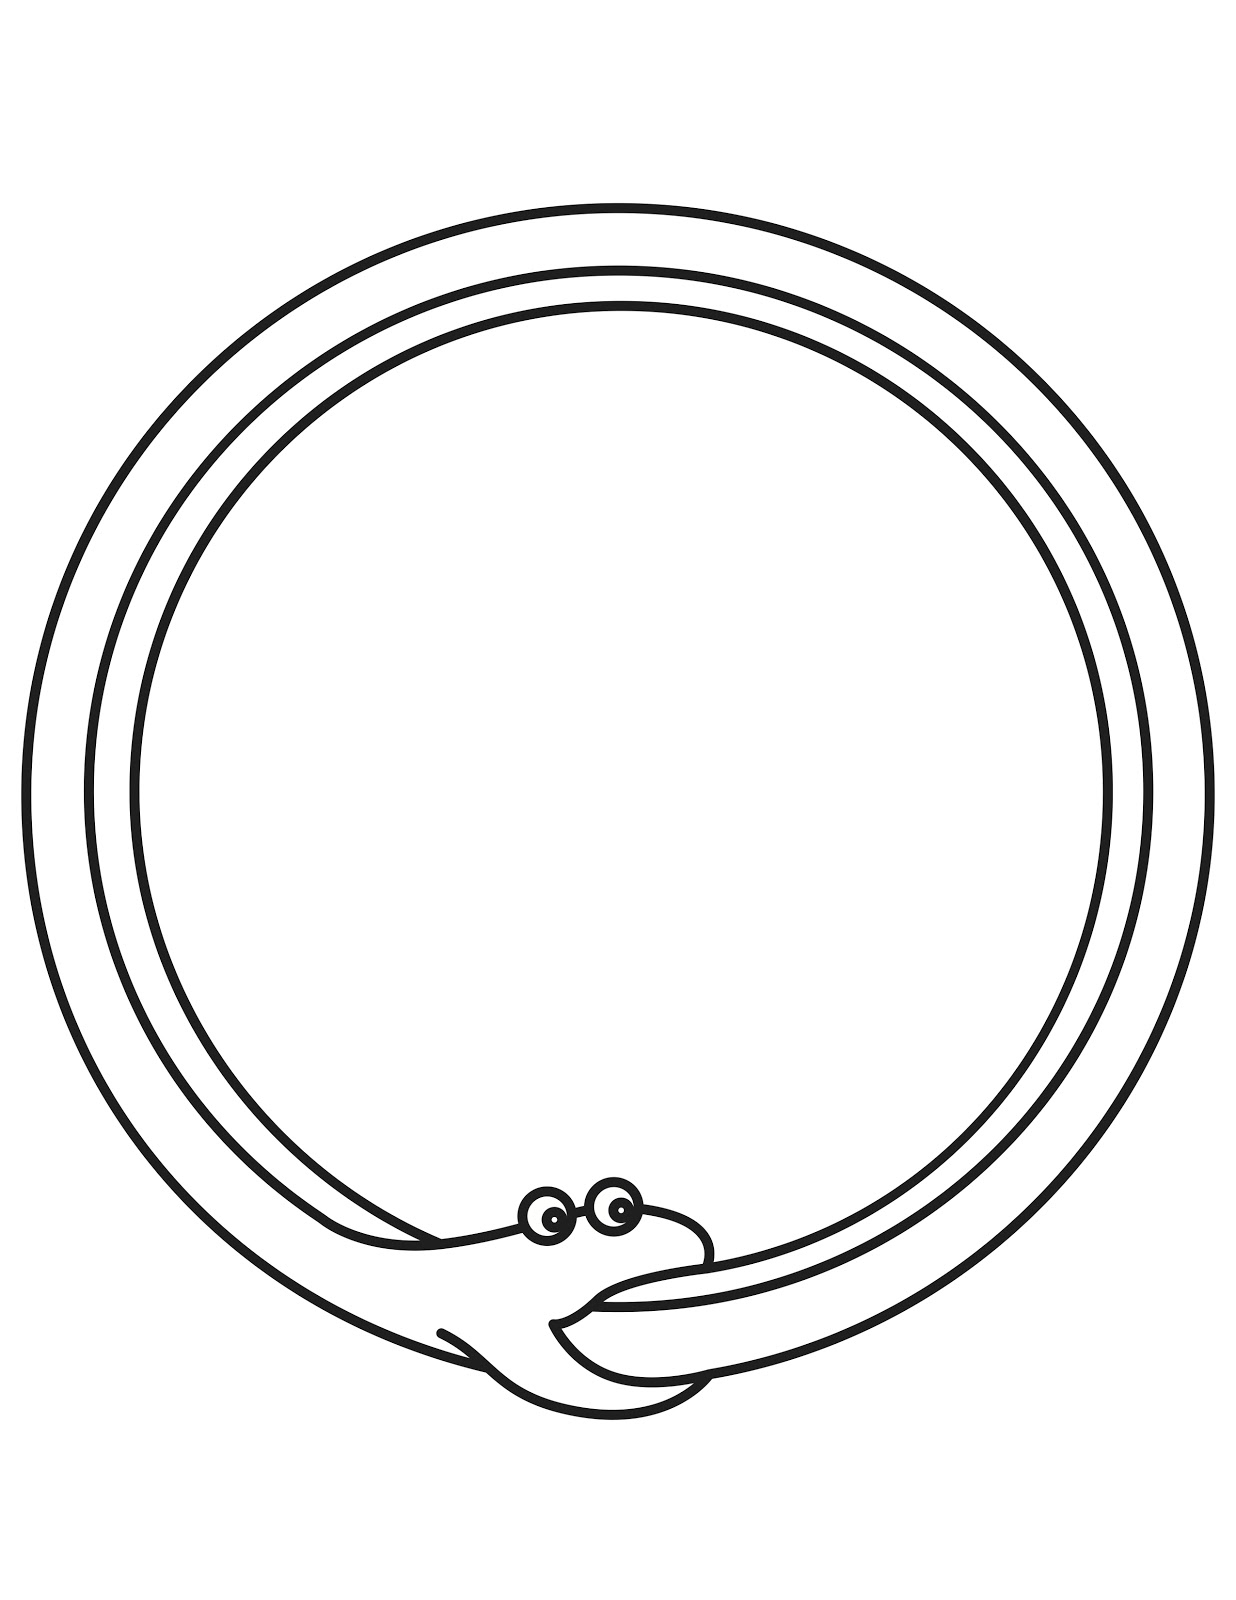 1236x1600 Ecology Without Nature Why The Comedy Ouroboros